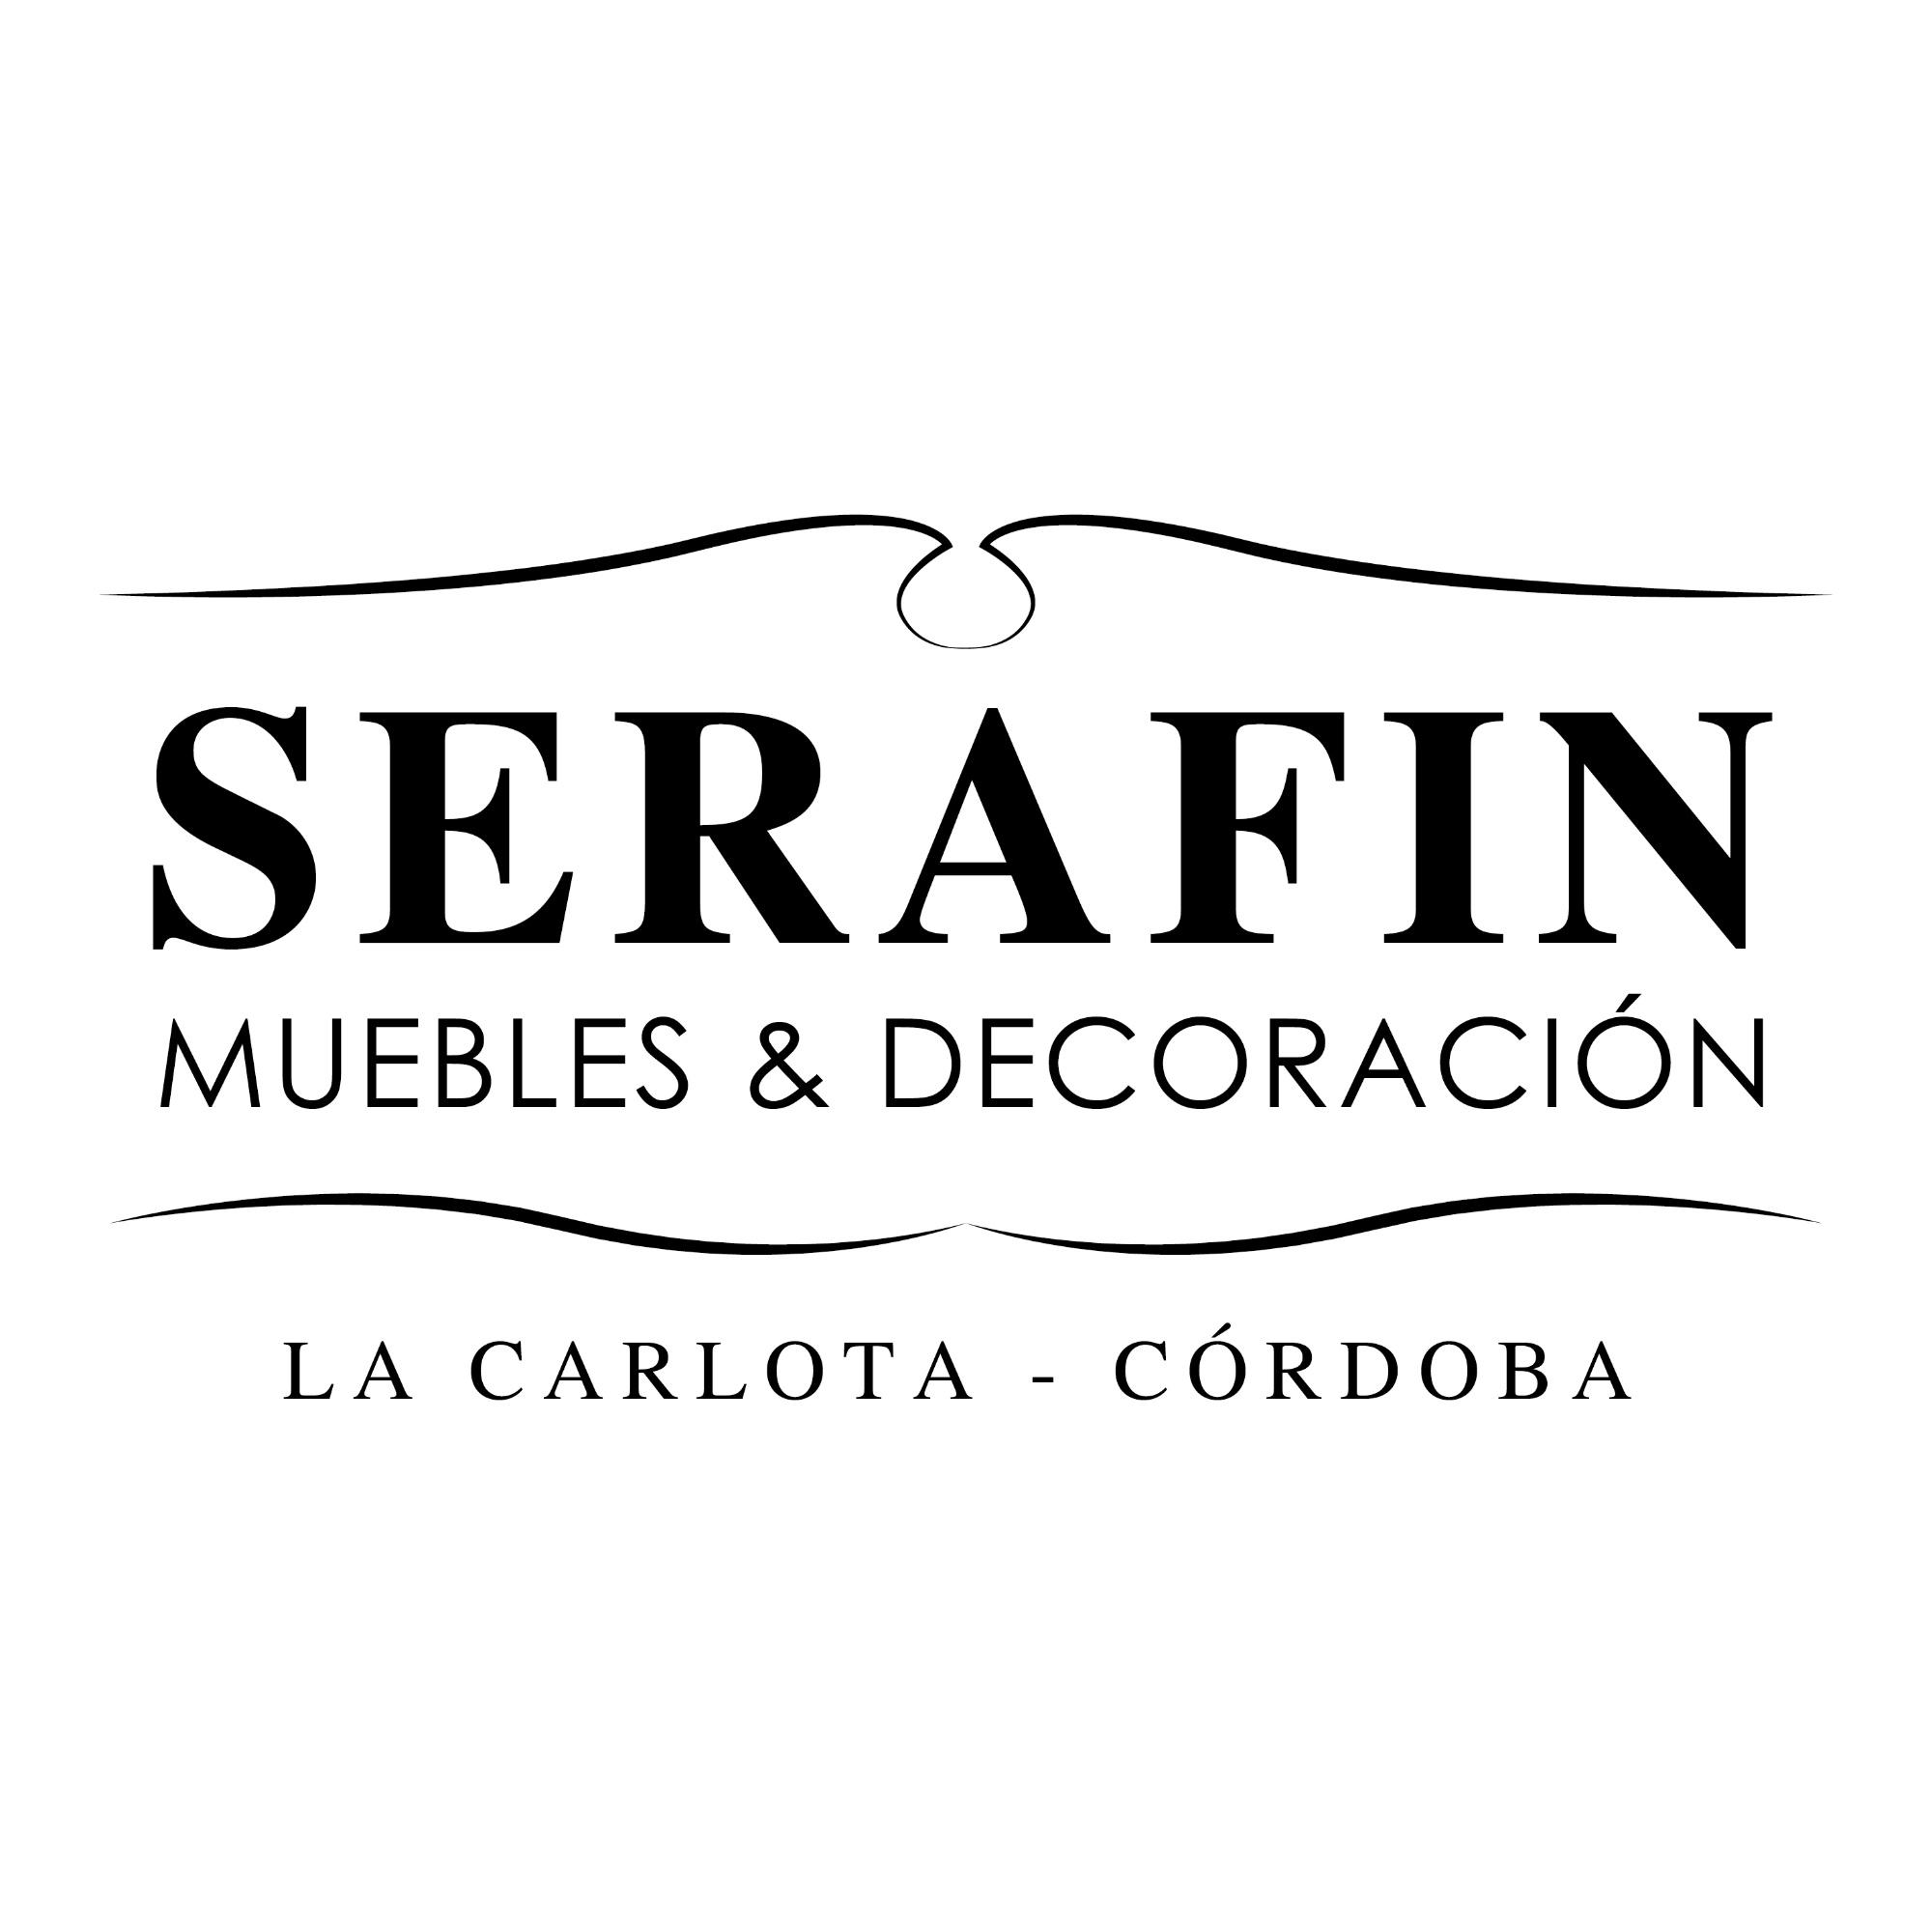 Muebles y decoraci n serafin especialistas en mobiliario for Muebles la carlota